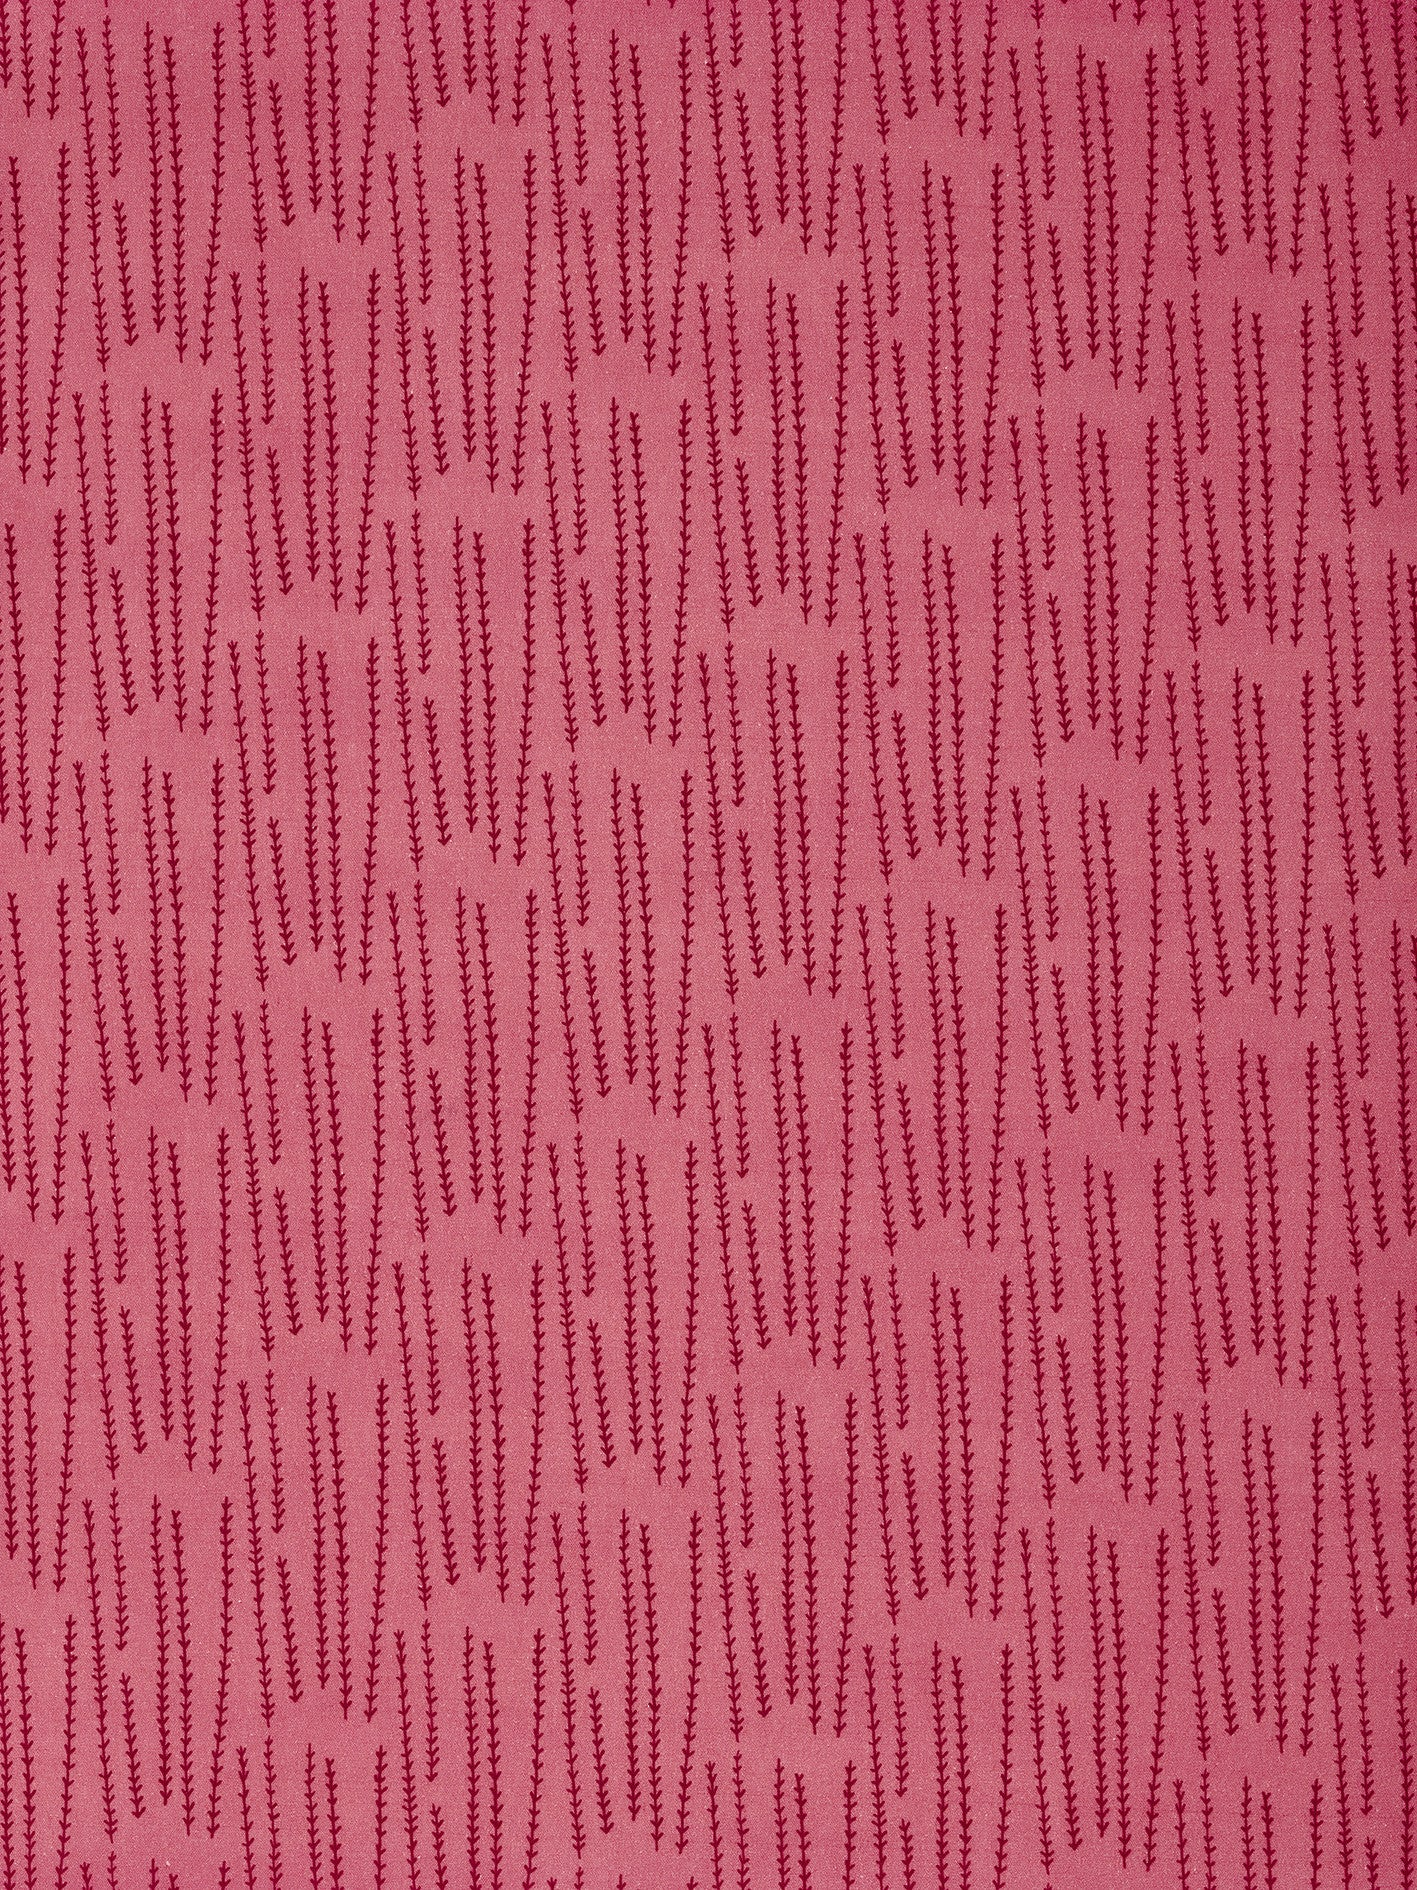 Graphic Rosemary Sprig Pattern Printed Linen Cotton Canvas Fabric in Bright Coral Pink & Vermilion Red